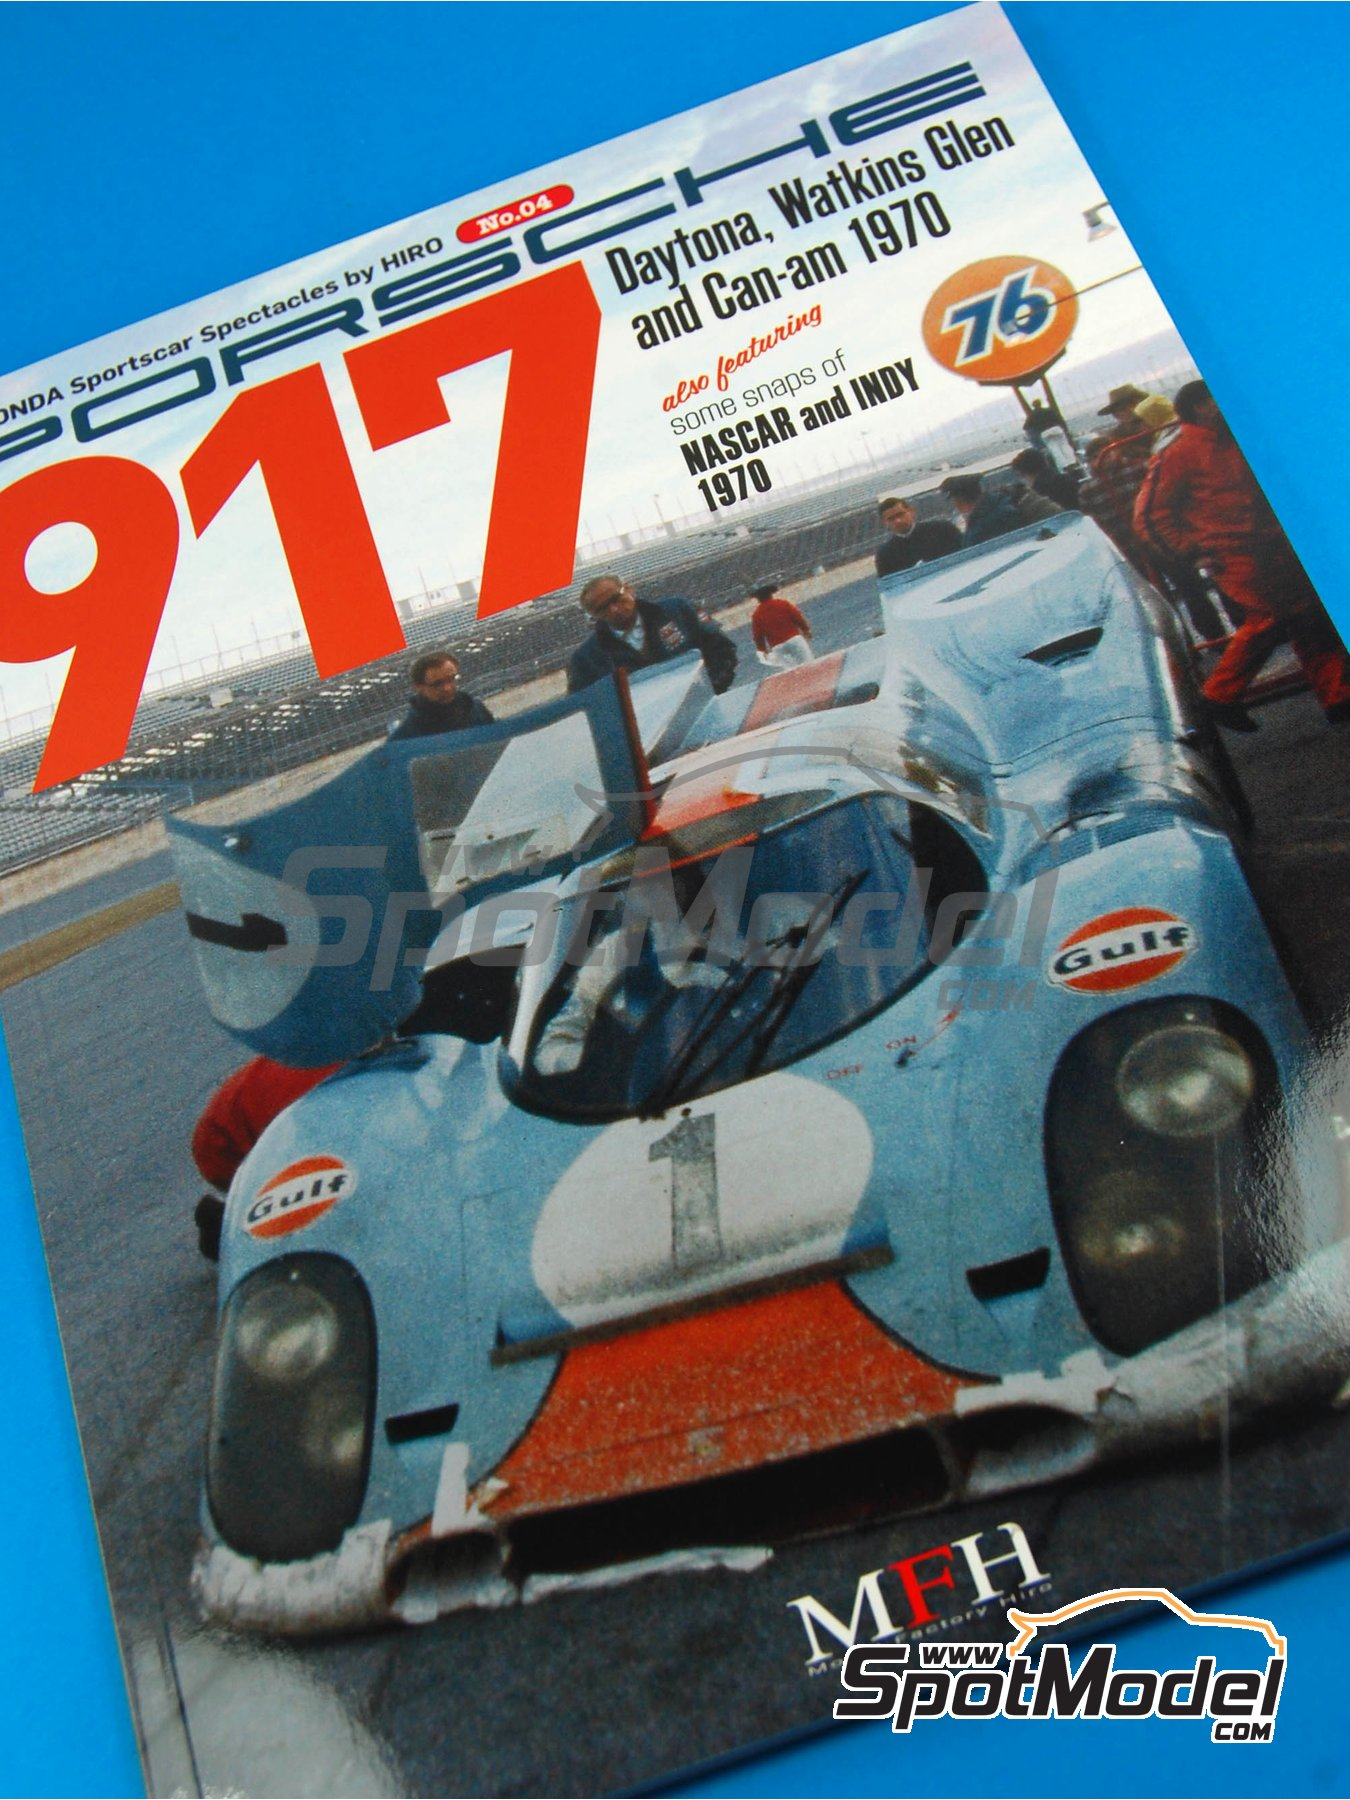 JOE HONDA - Sportcar Spectacles - Porsche 917 - 24 Hours of Daytona, Can-Am Canadian-American Challenge Cup, Watkins Glen 6 Hours 1970 | Reference / walkaround book manufactured by Model Factory Hiro (ref.MFH-SS004) image